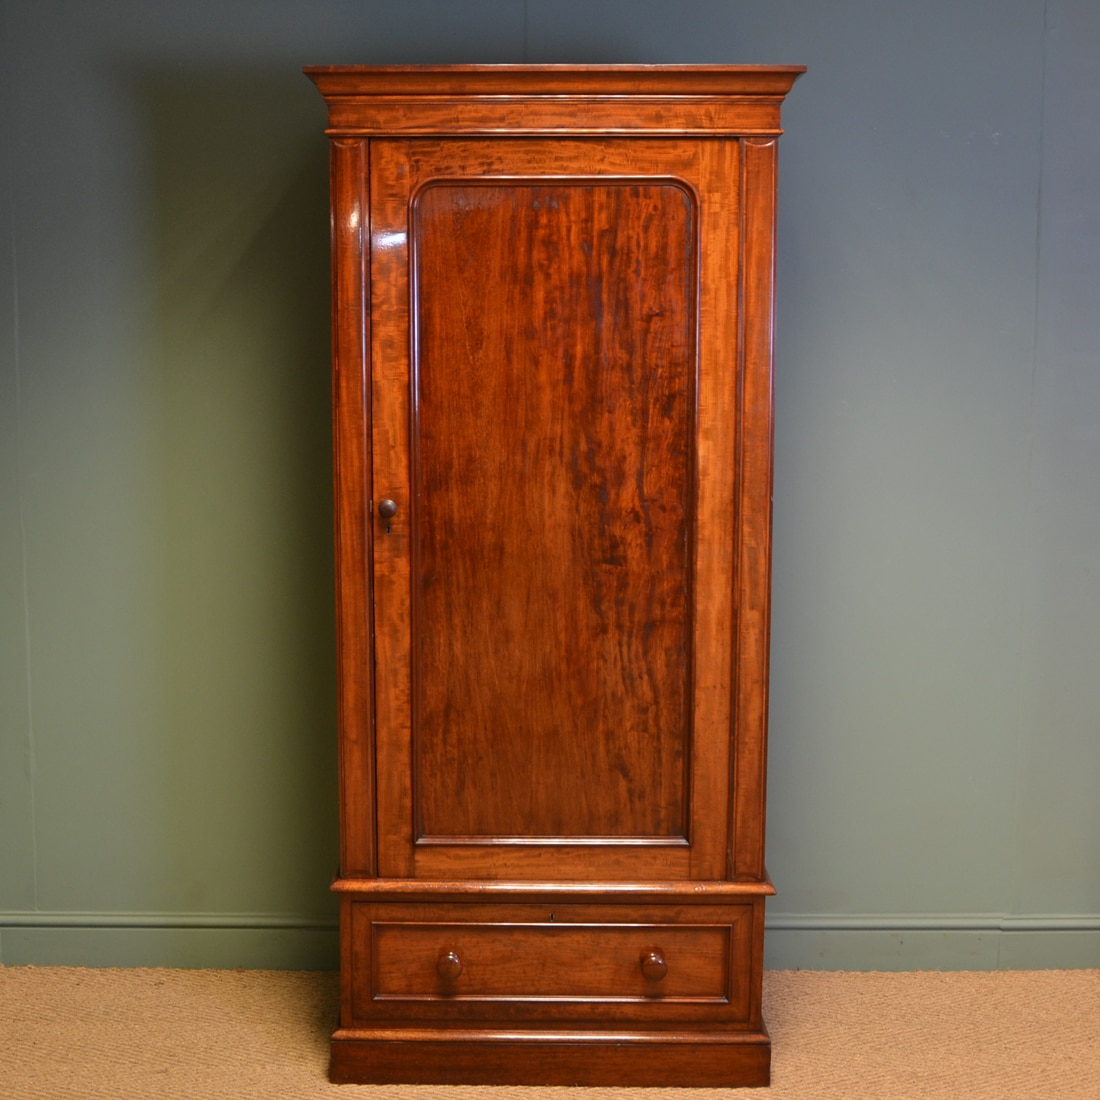 Furniture Large Solid Wooden Victorian Wardrobe With Single Hanging Wardrobe And Drawers